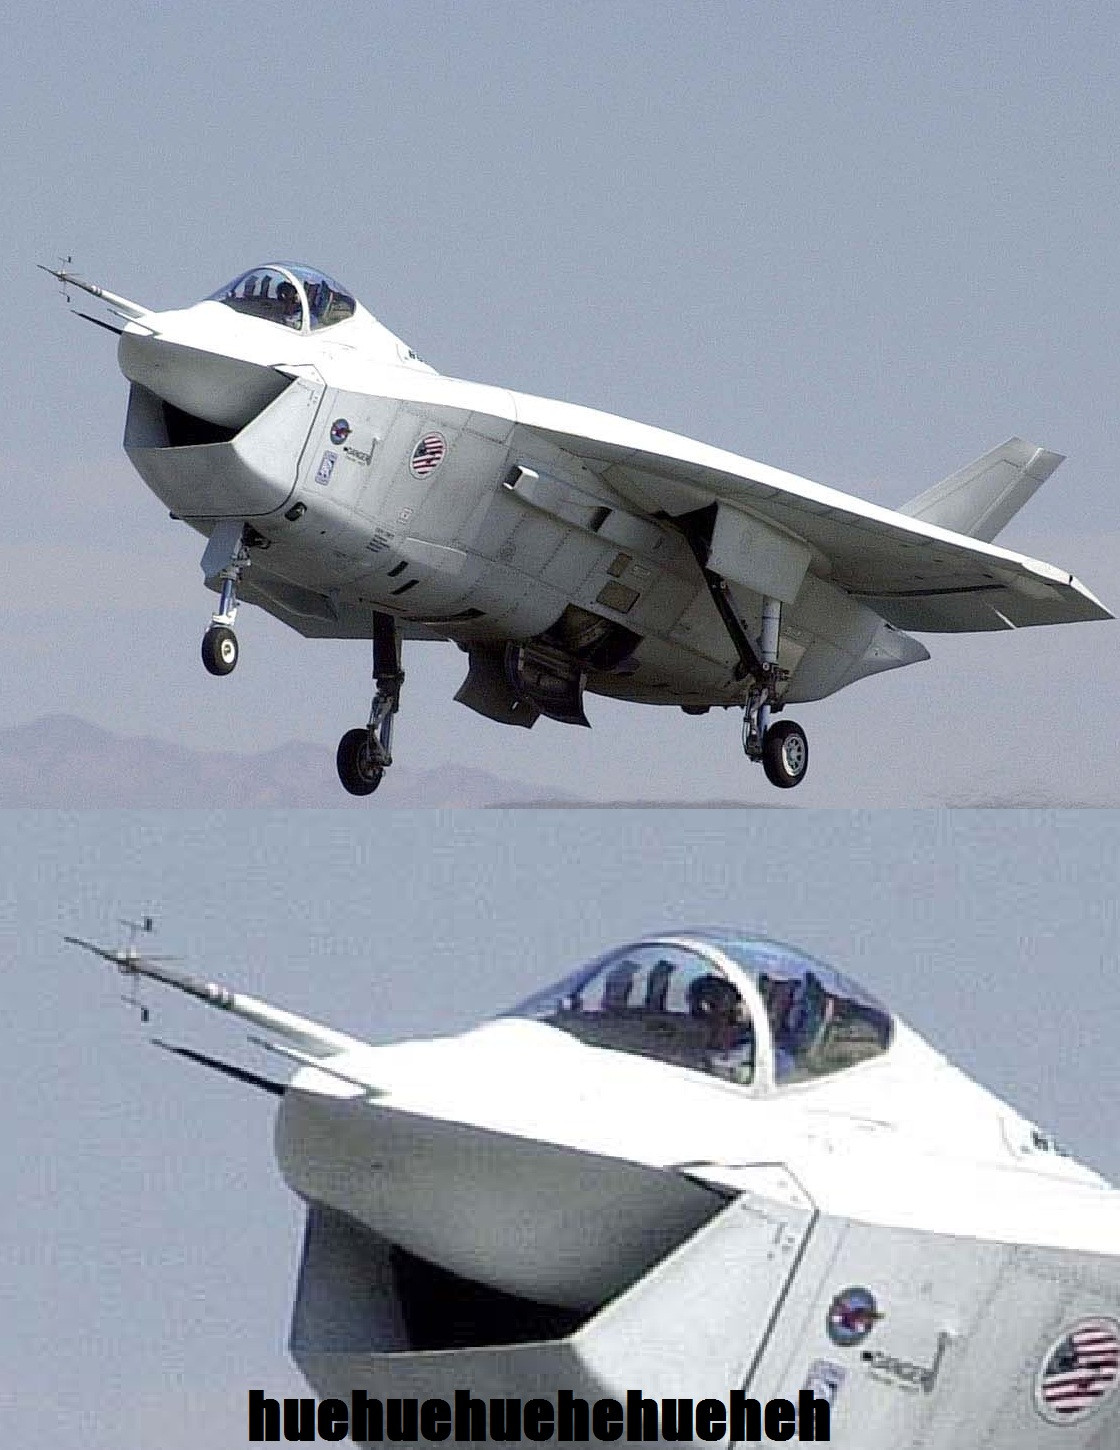 X-32 is having a good time   Laughing Lizard / hhhehehe ...